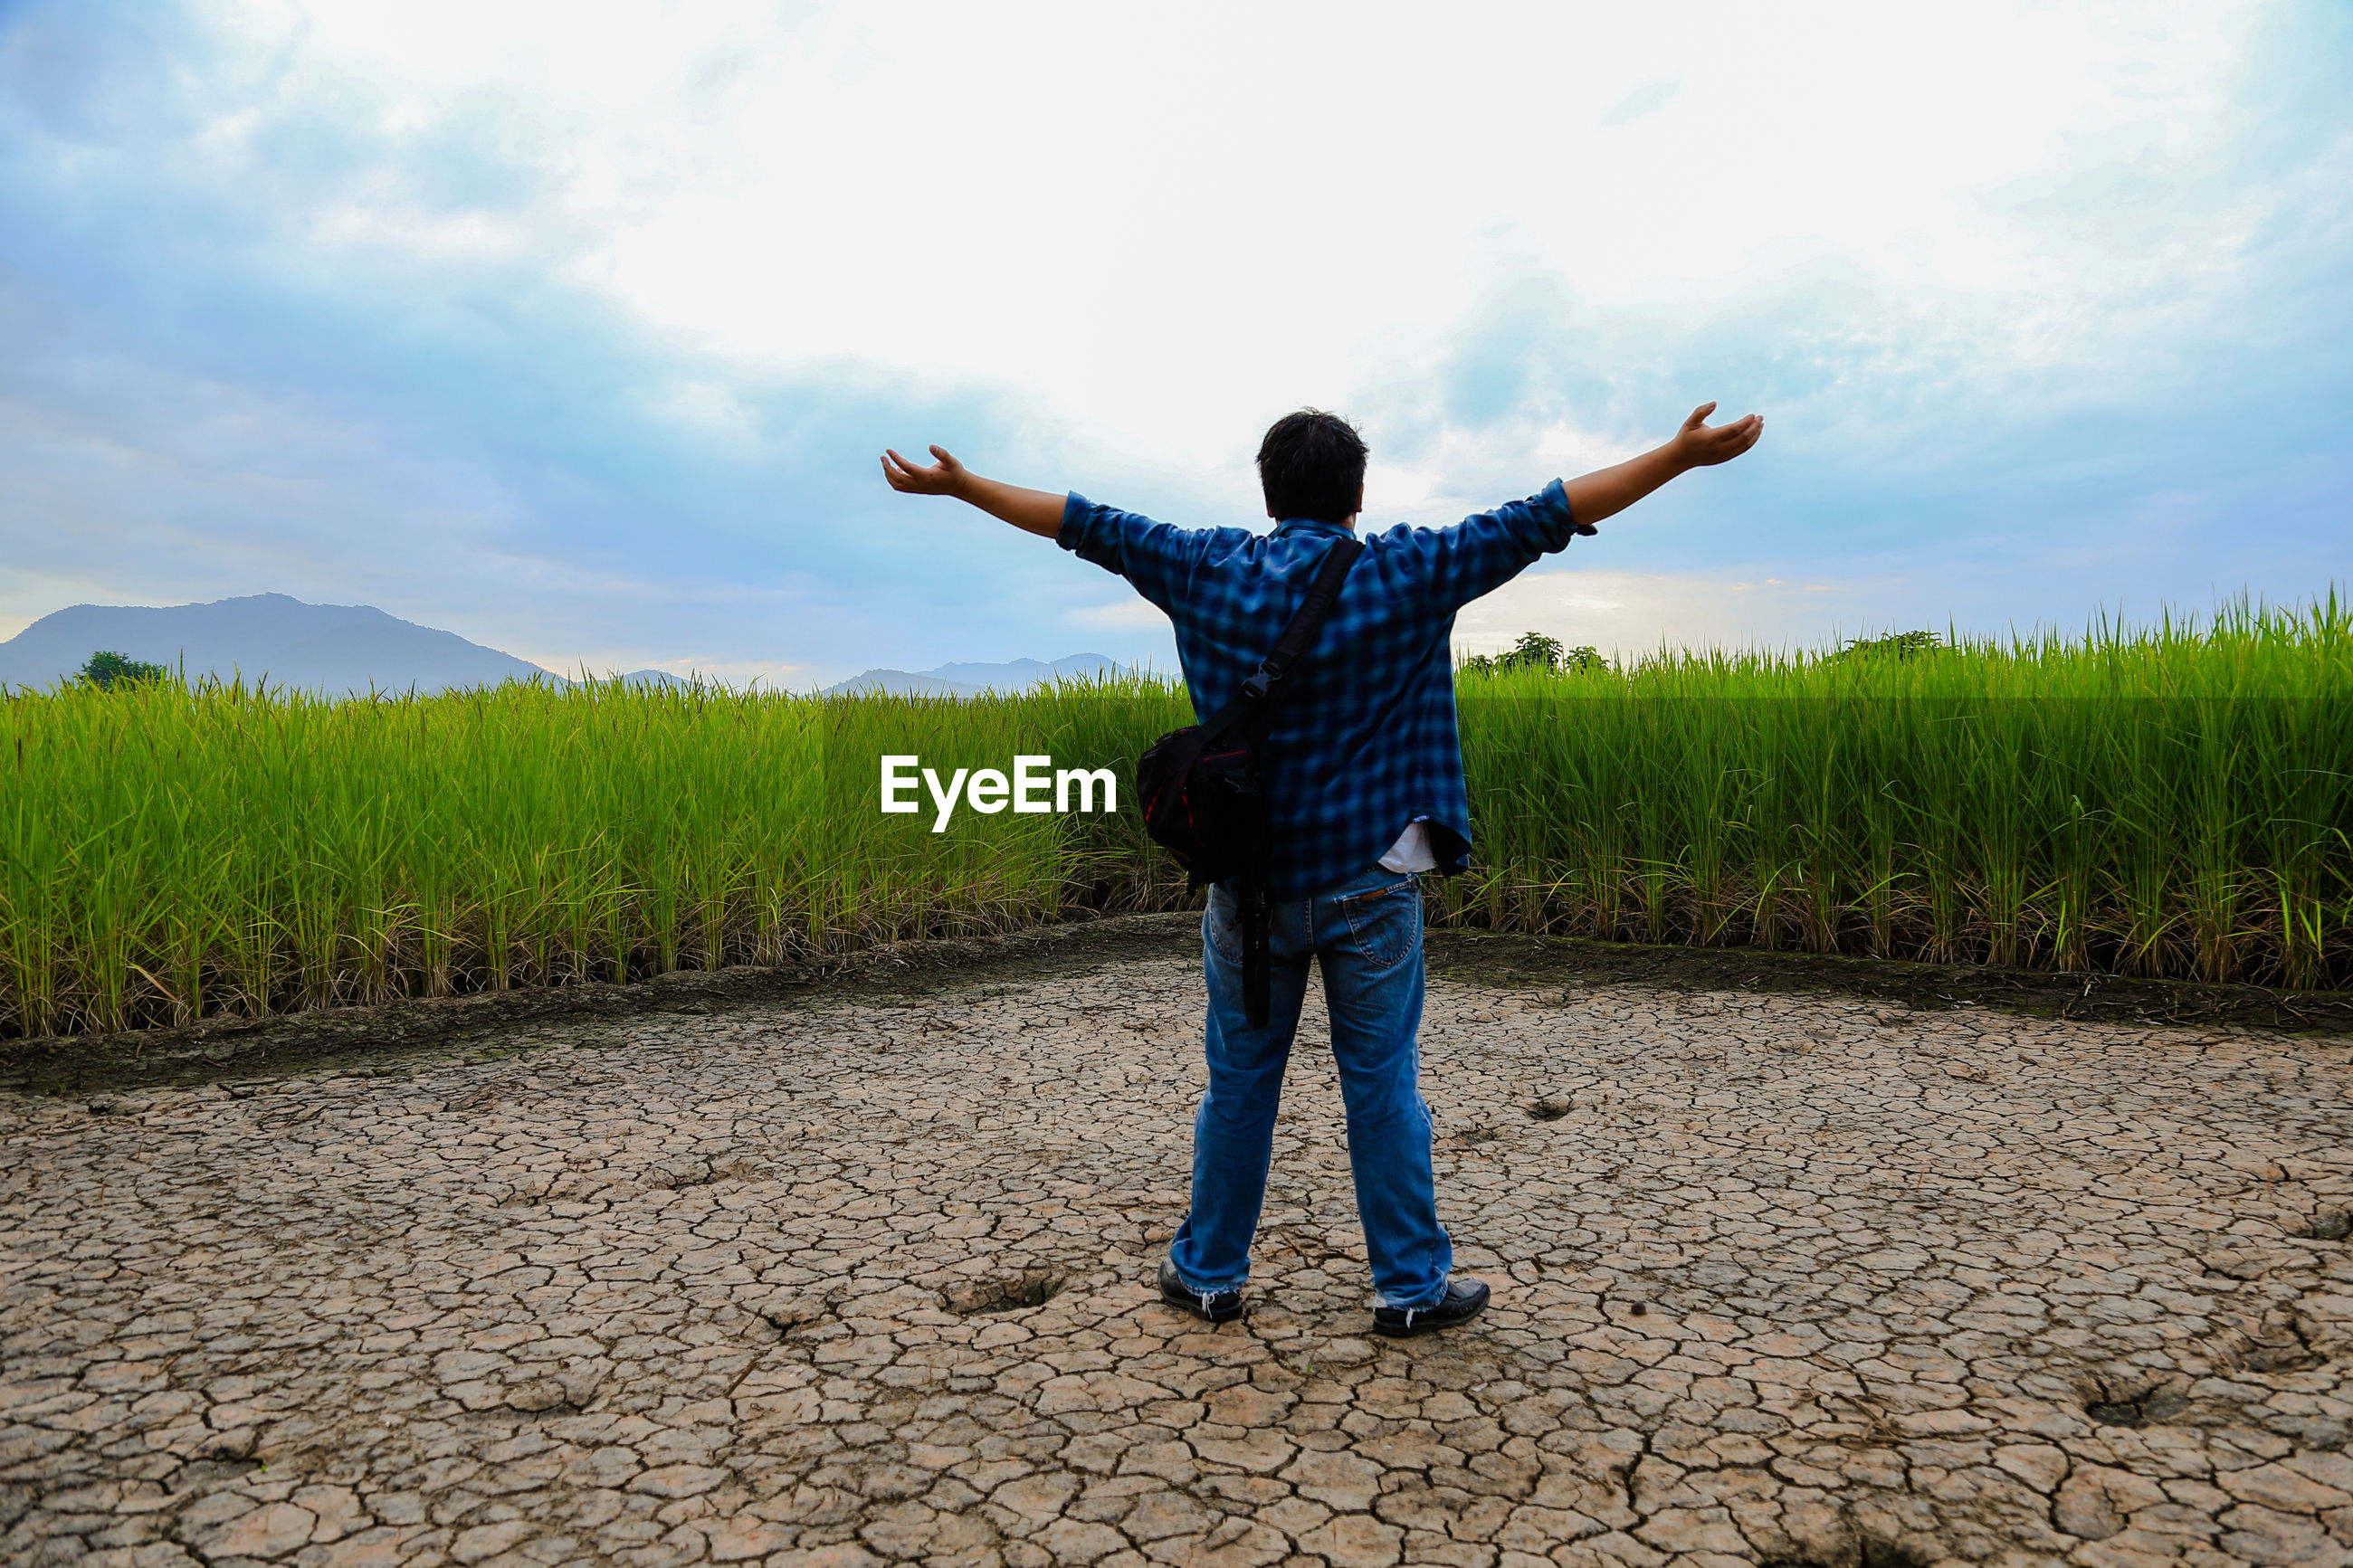 Rear view of man with arms outstretched standing on dry field against sky